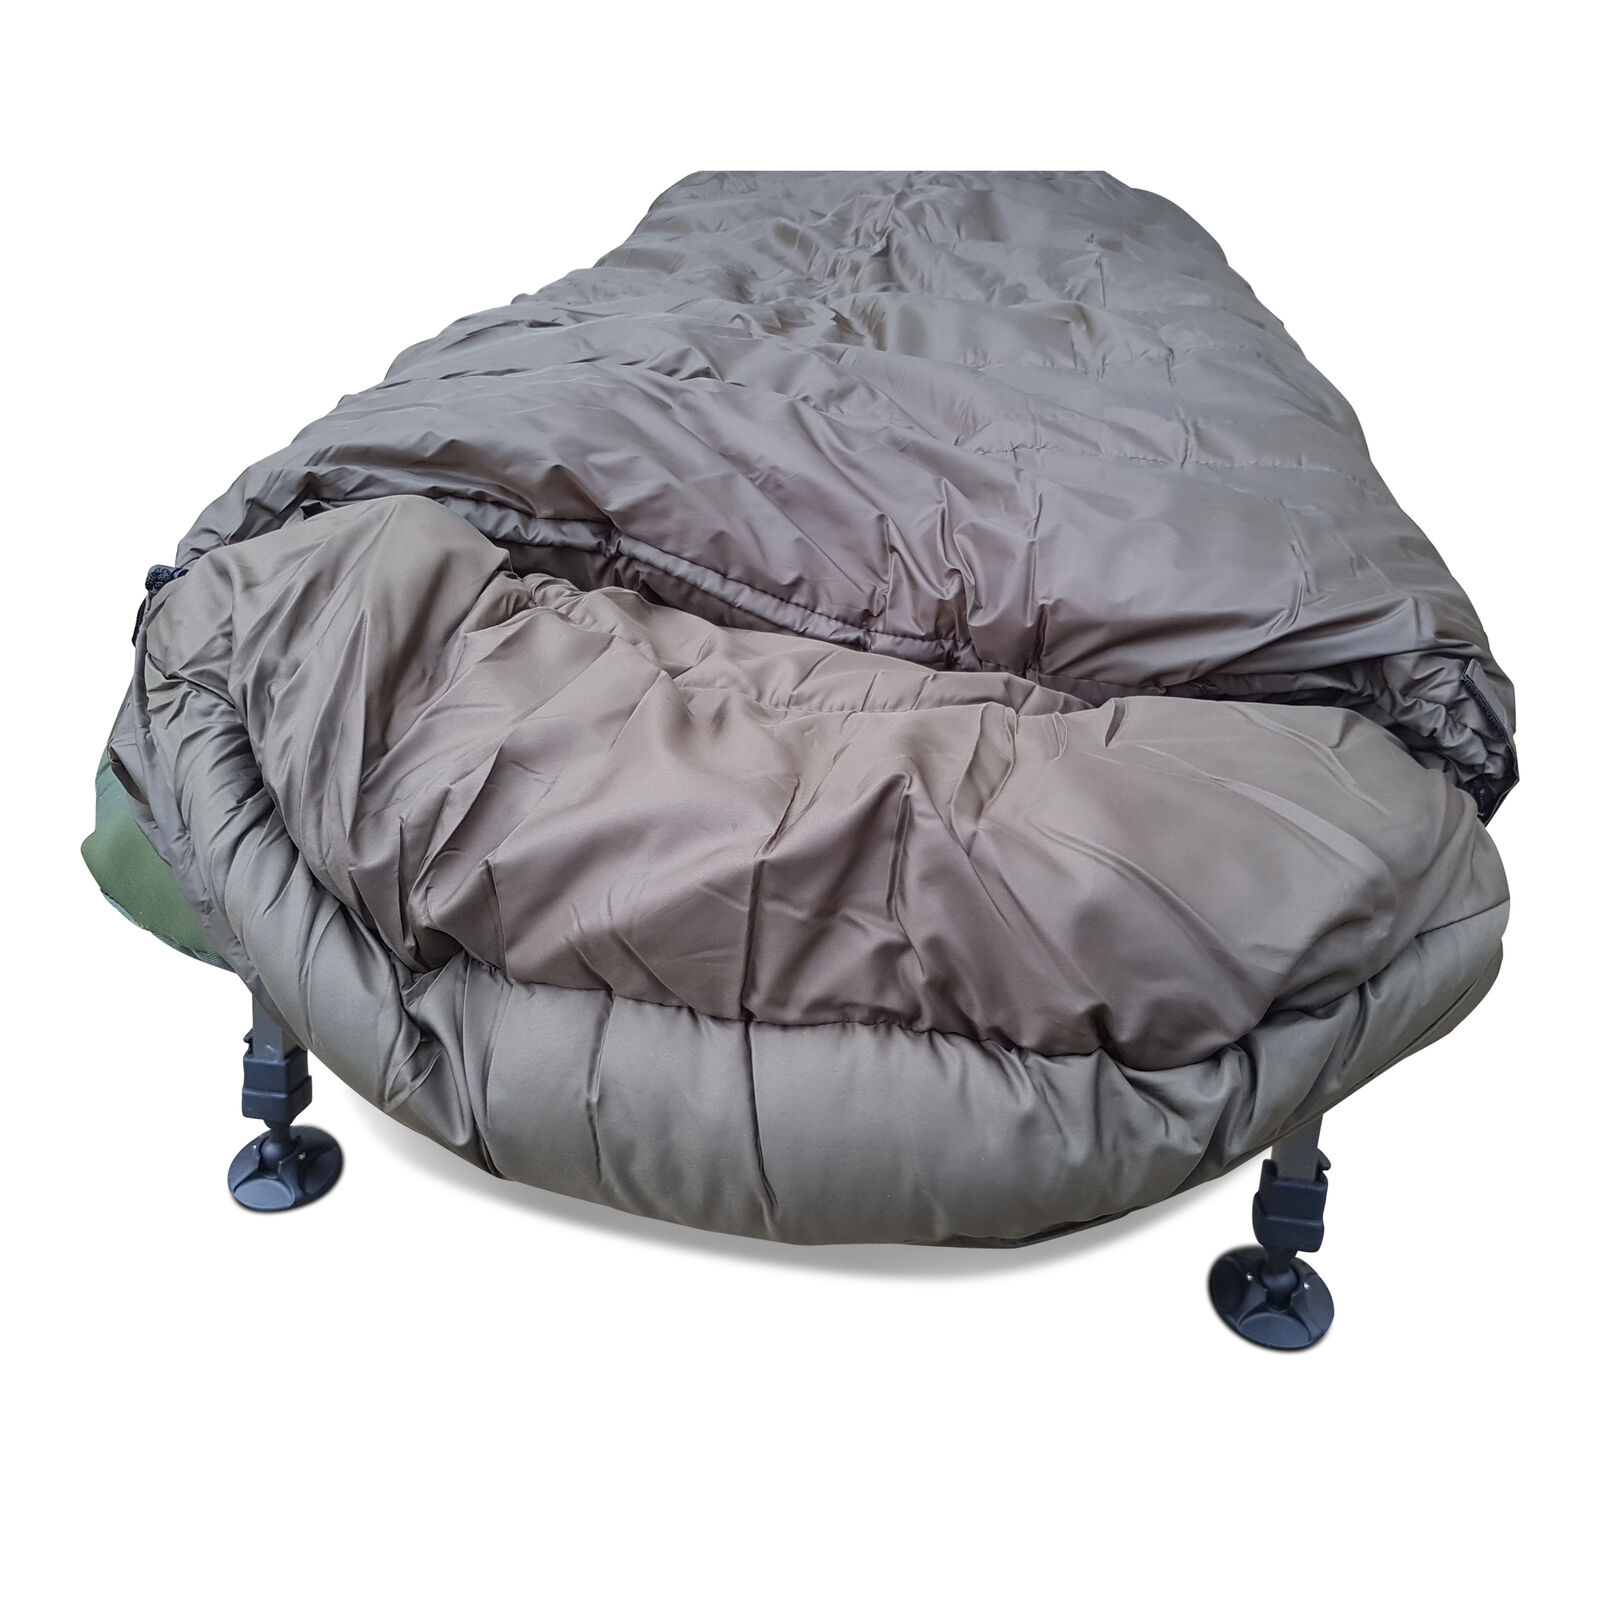 Cyprinus Carpstar Deep Snooze  5 Season Sleeping Bag - Our Warmest